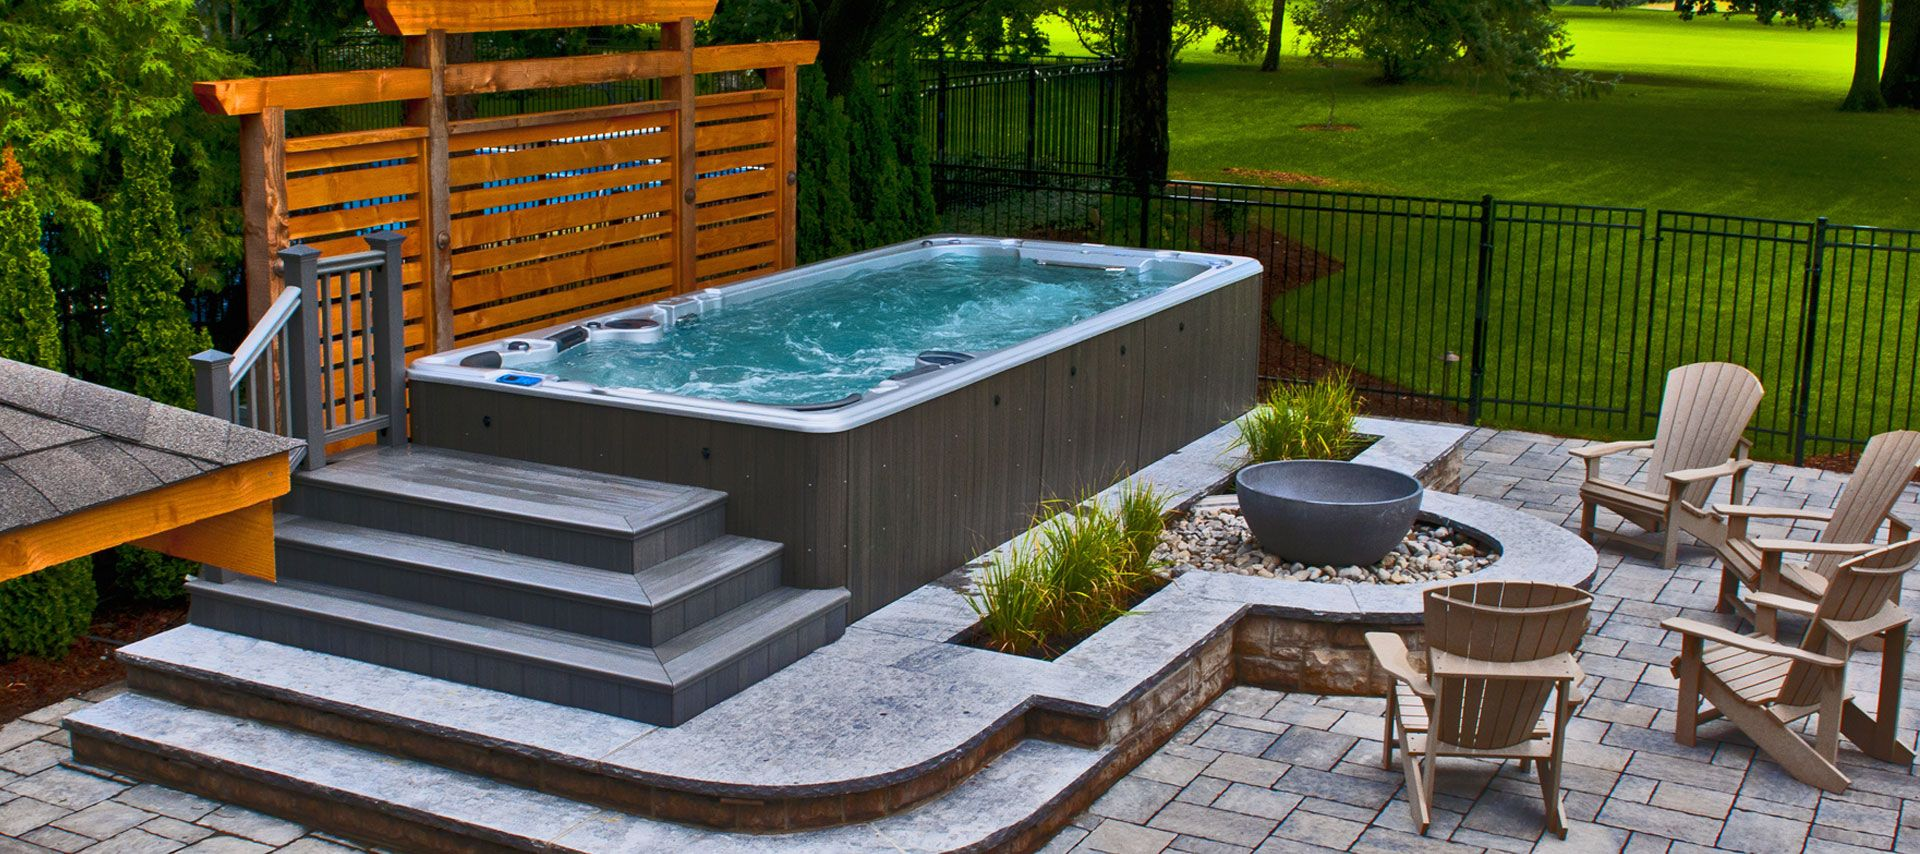 Hydropool hot tubs swim spas and accessories jacuzzi for Pool design with hot tub